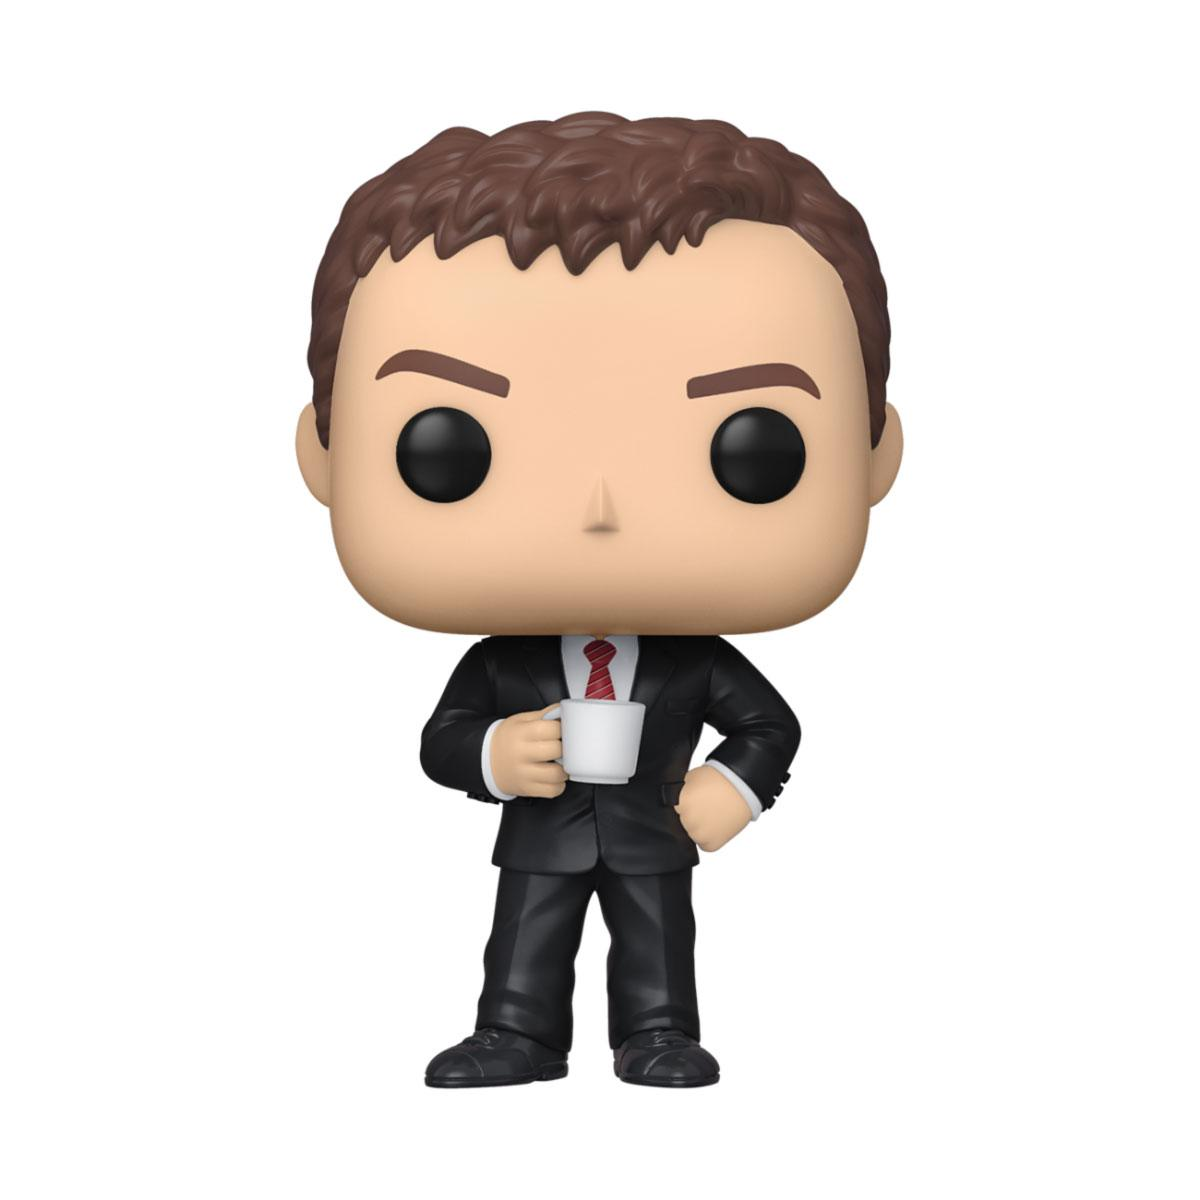 Will & Grace POP! TV Vinyl Figure Will Truman 9 cm